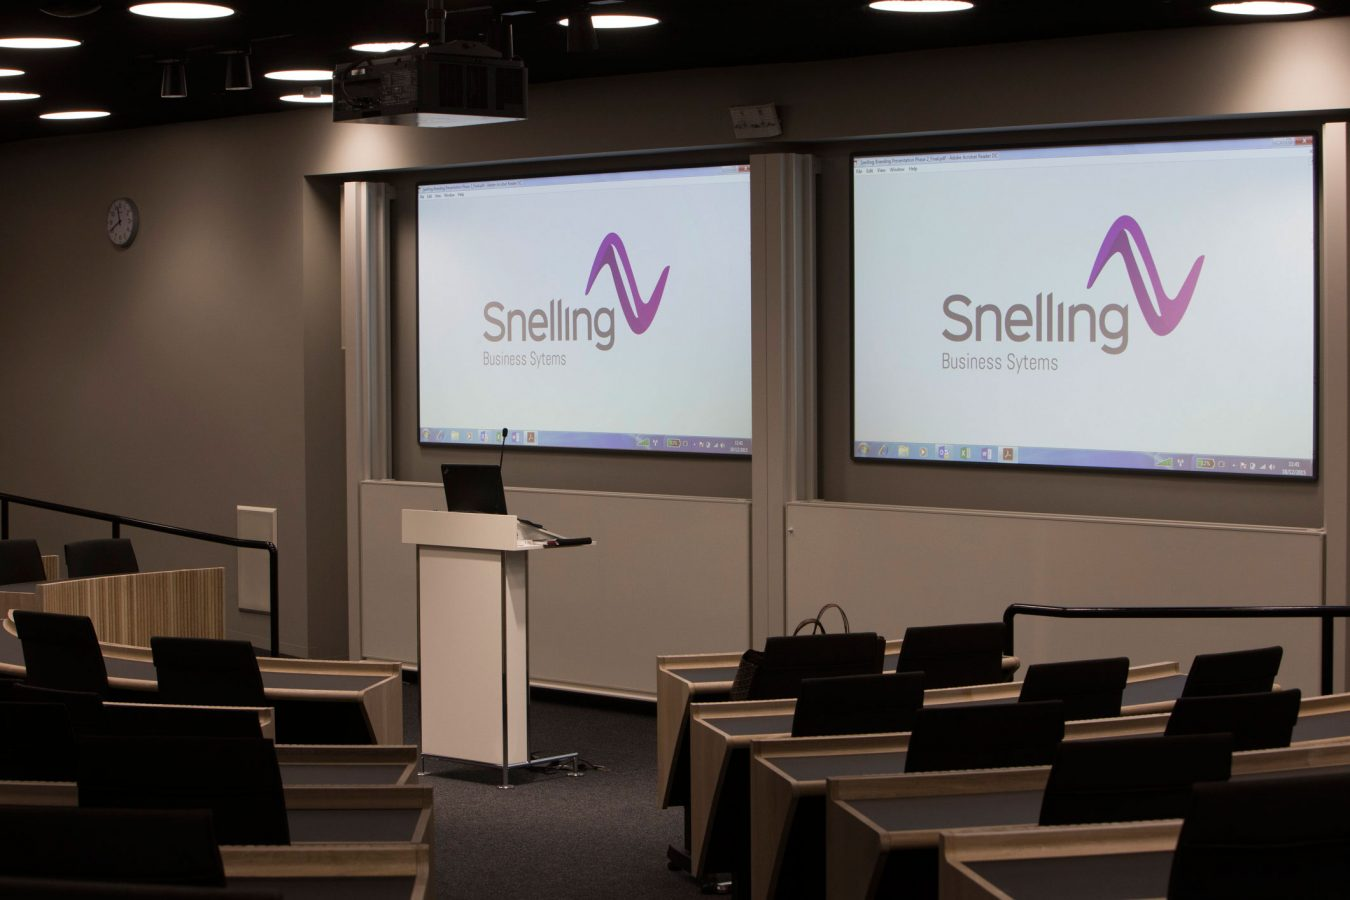 Blavatnik | Snelling Business Systems 22